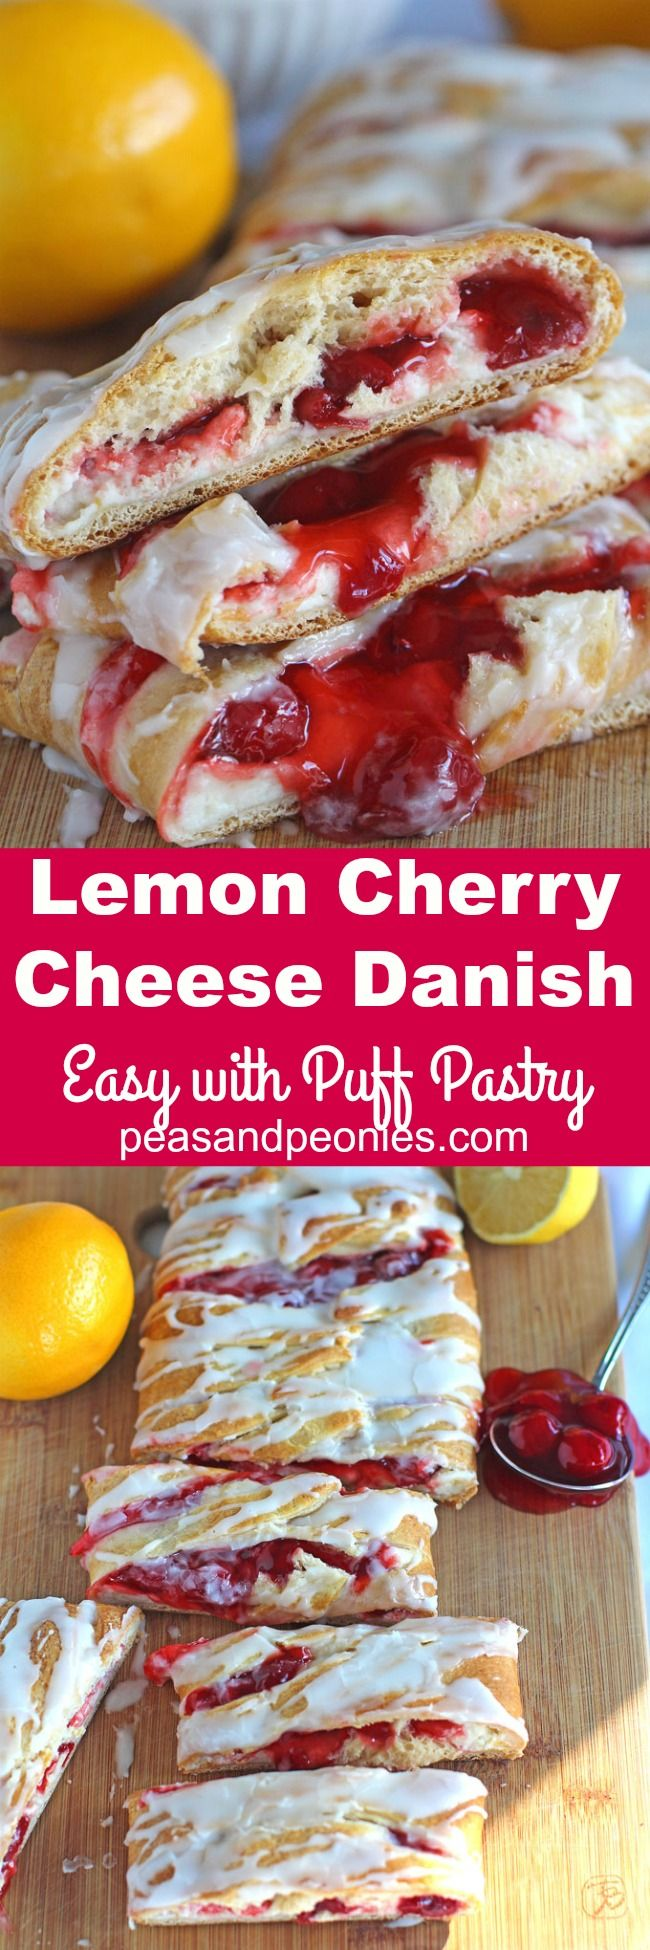 766 best more danish food images on pinterest danish food denmark lemon cherry cheese danish recipe is very easy to make with puff pastry ready in forumfinder Gallery